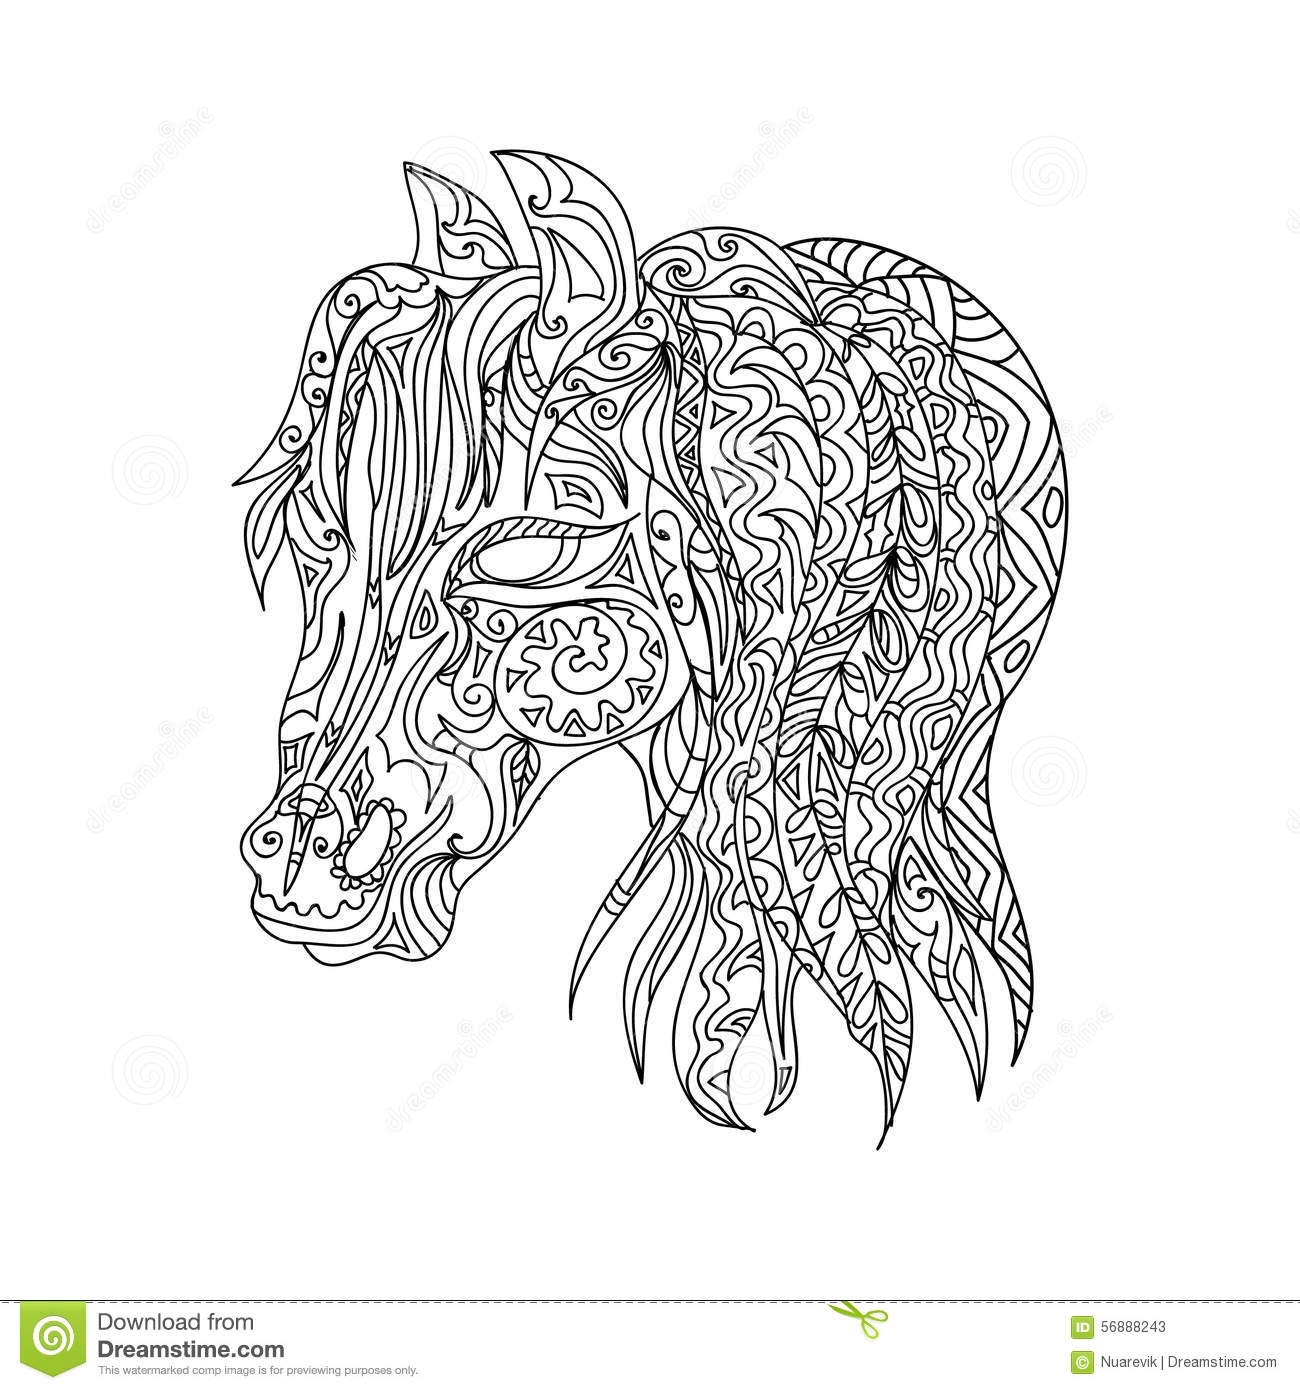 Abstract Horse Coloring Pages : Horse head zentangle stock illustration image of mandala